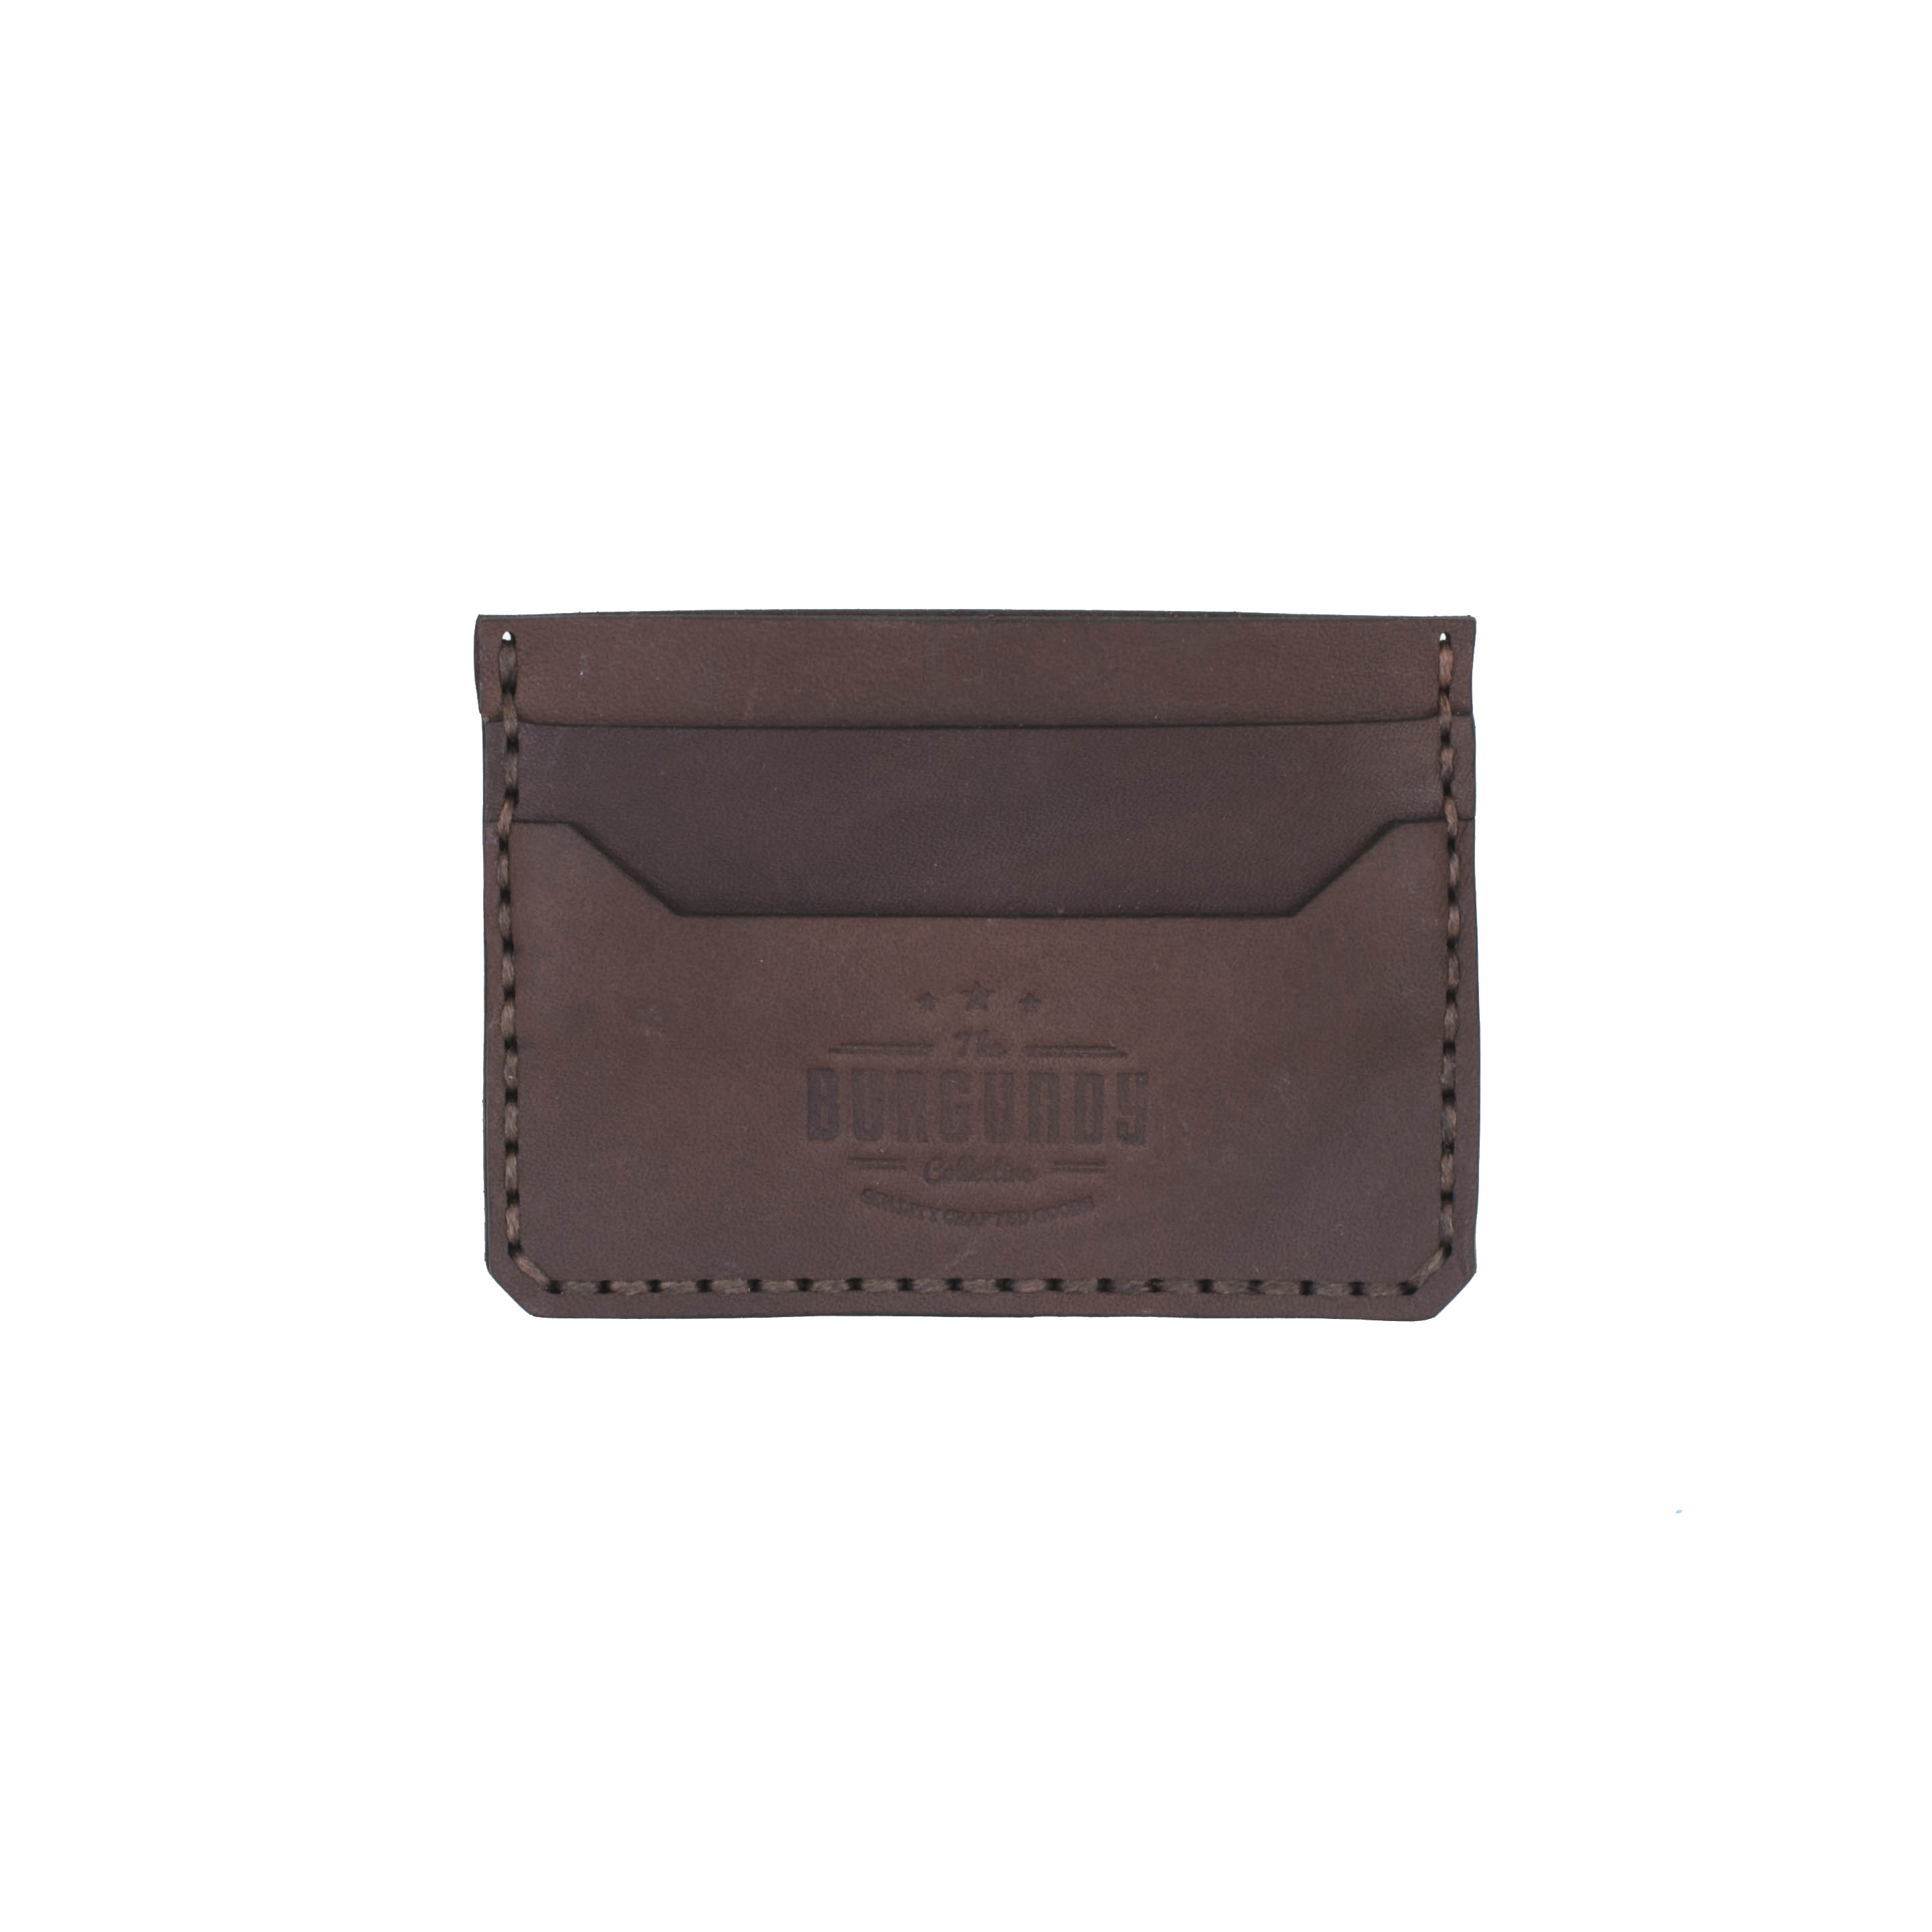 This wallet offers the right amount of space for your frequently used cards. The width is large enough to allow easy entry yet tight enough to prevent cards from slipping out. The Minimalist Card holder has a weathered look from the moment you receive it.    FEATURES:   Crafted from premium vegetable tanned leather 4 card slots 1 main compartment for notes or slips     DIMENSIONS:  H 7,5cm x W 10cm